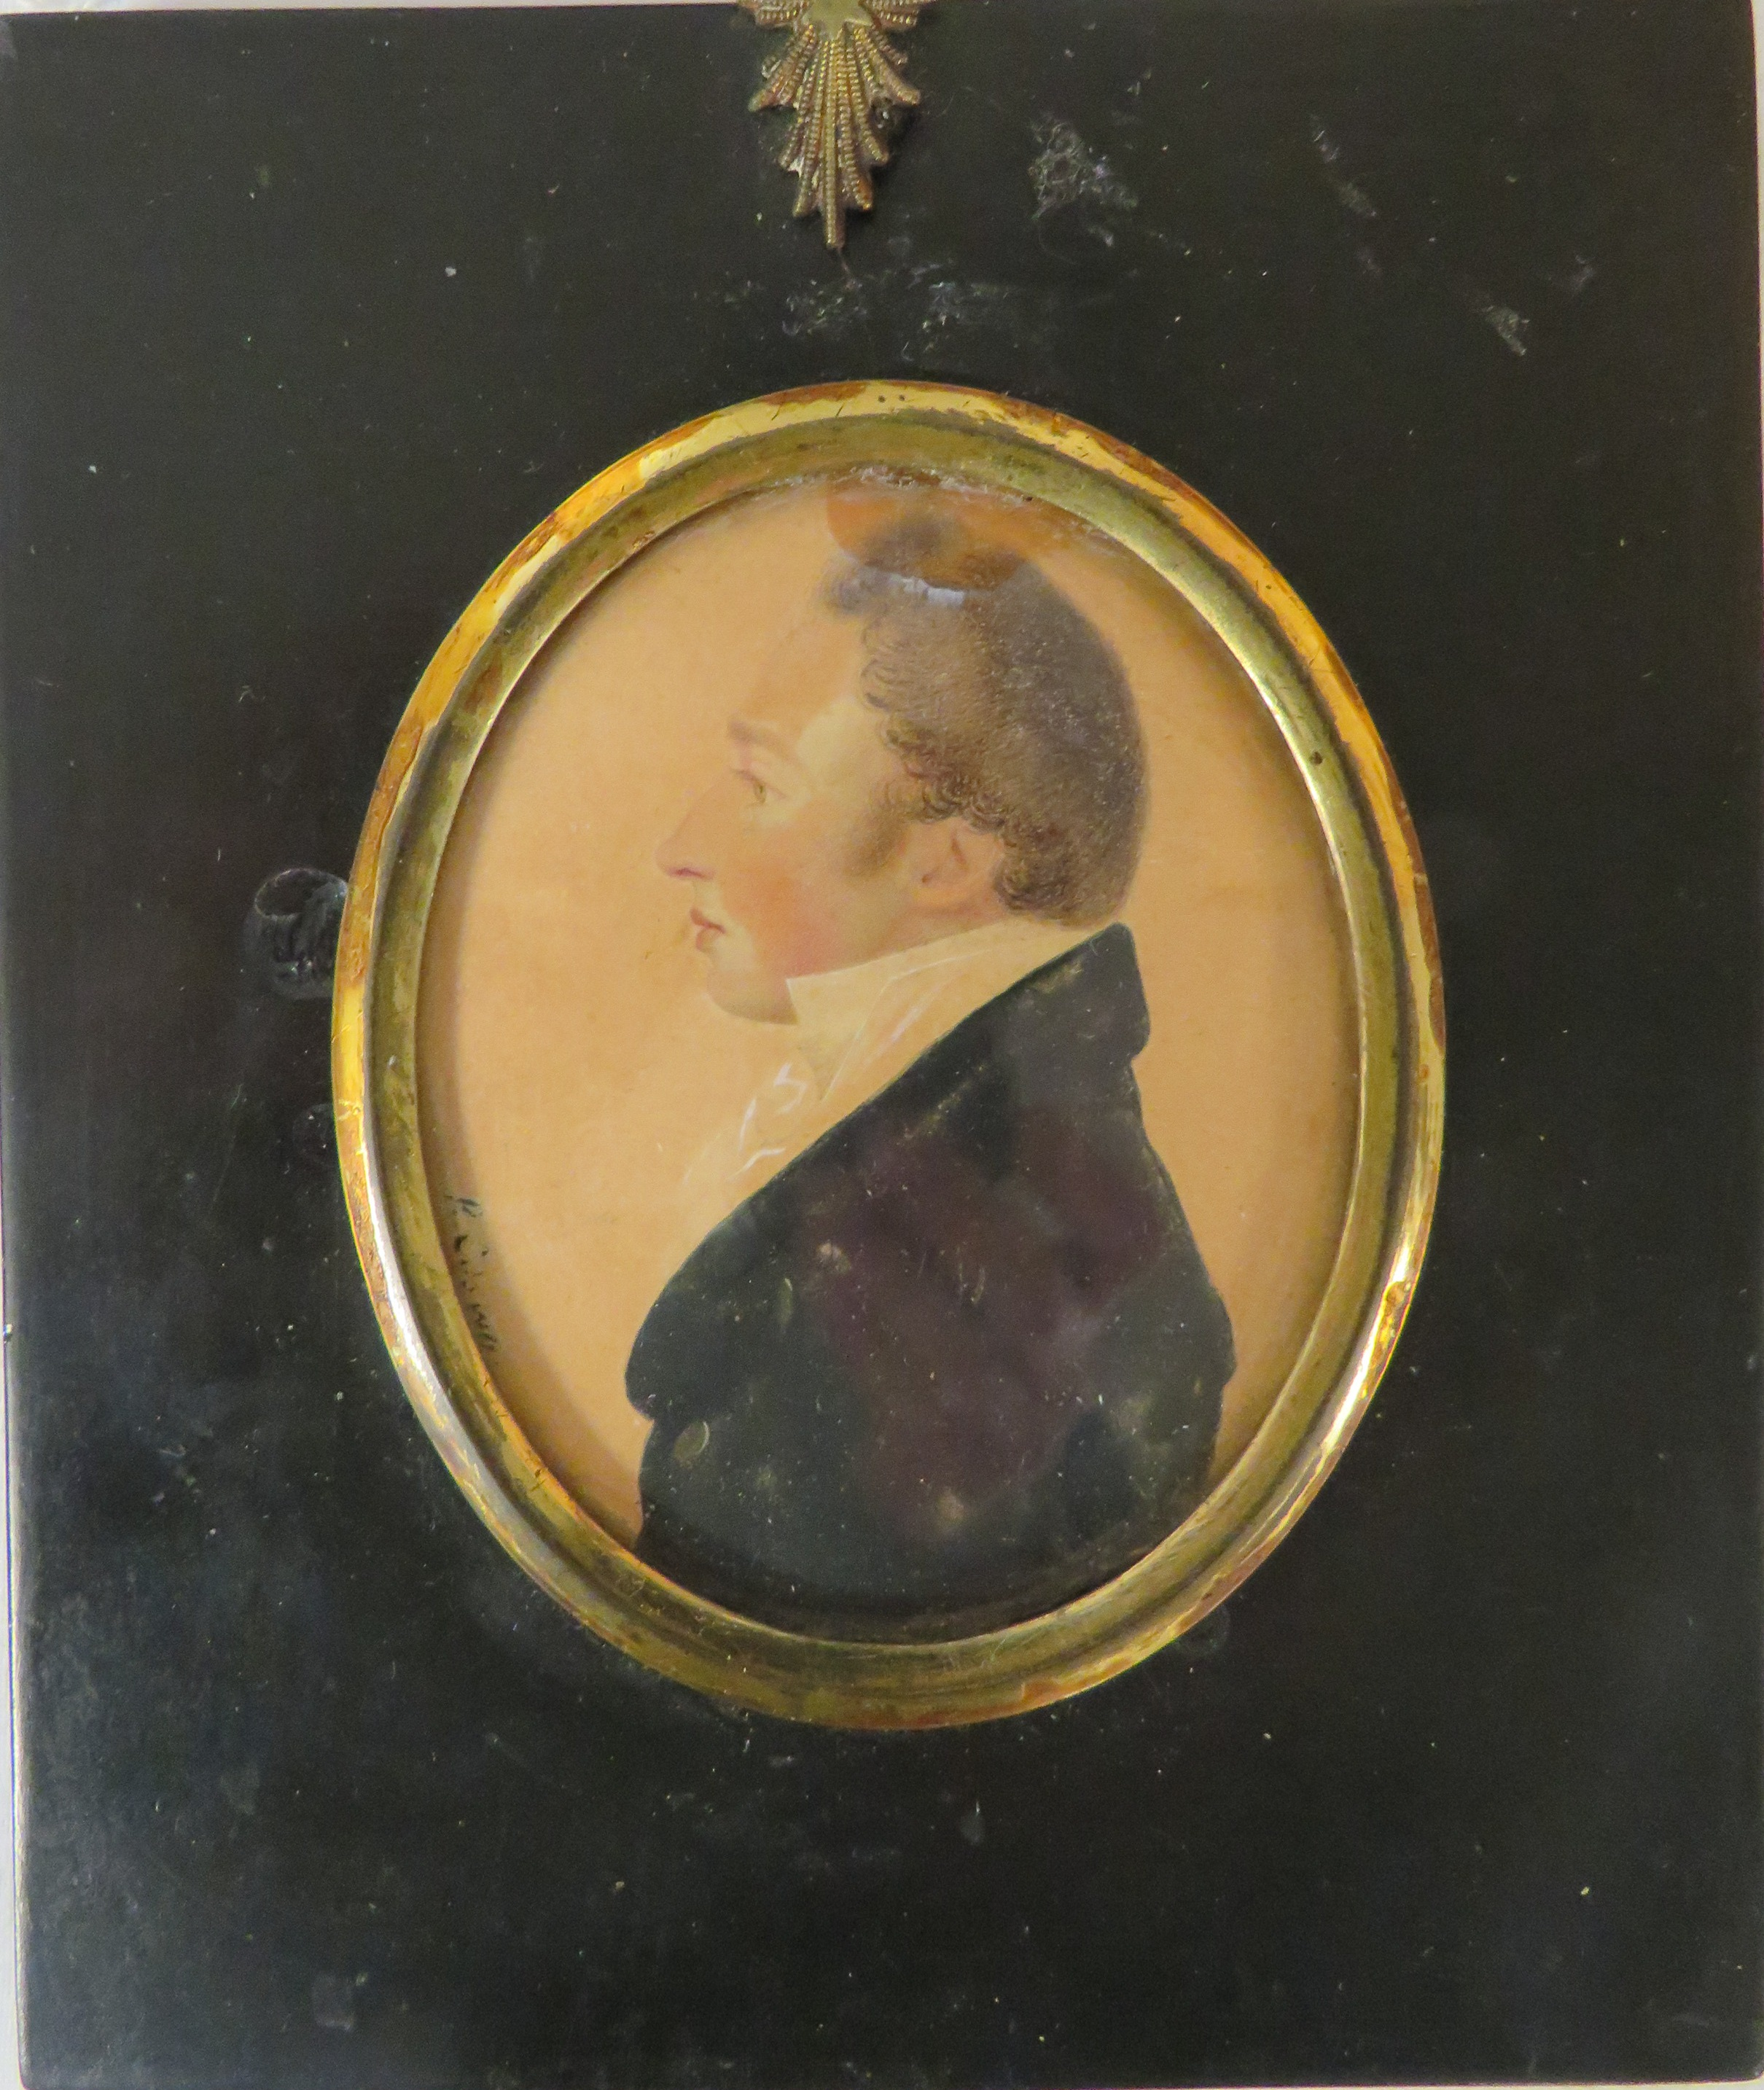 Lot 45 - Regency painted miniature oval portrait of gentleman on paper, signed to left side perhaps R.